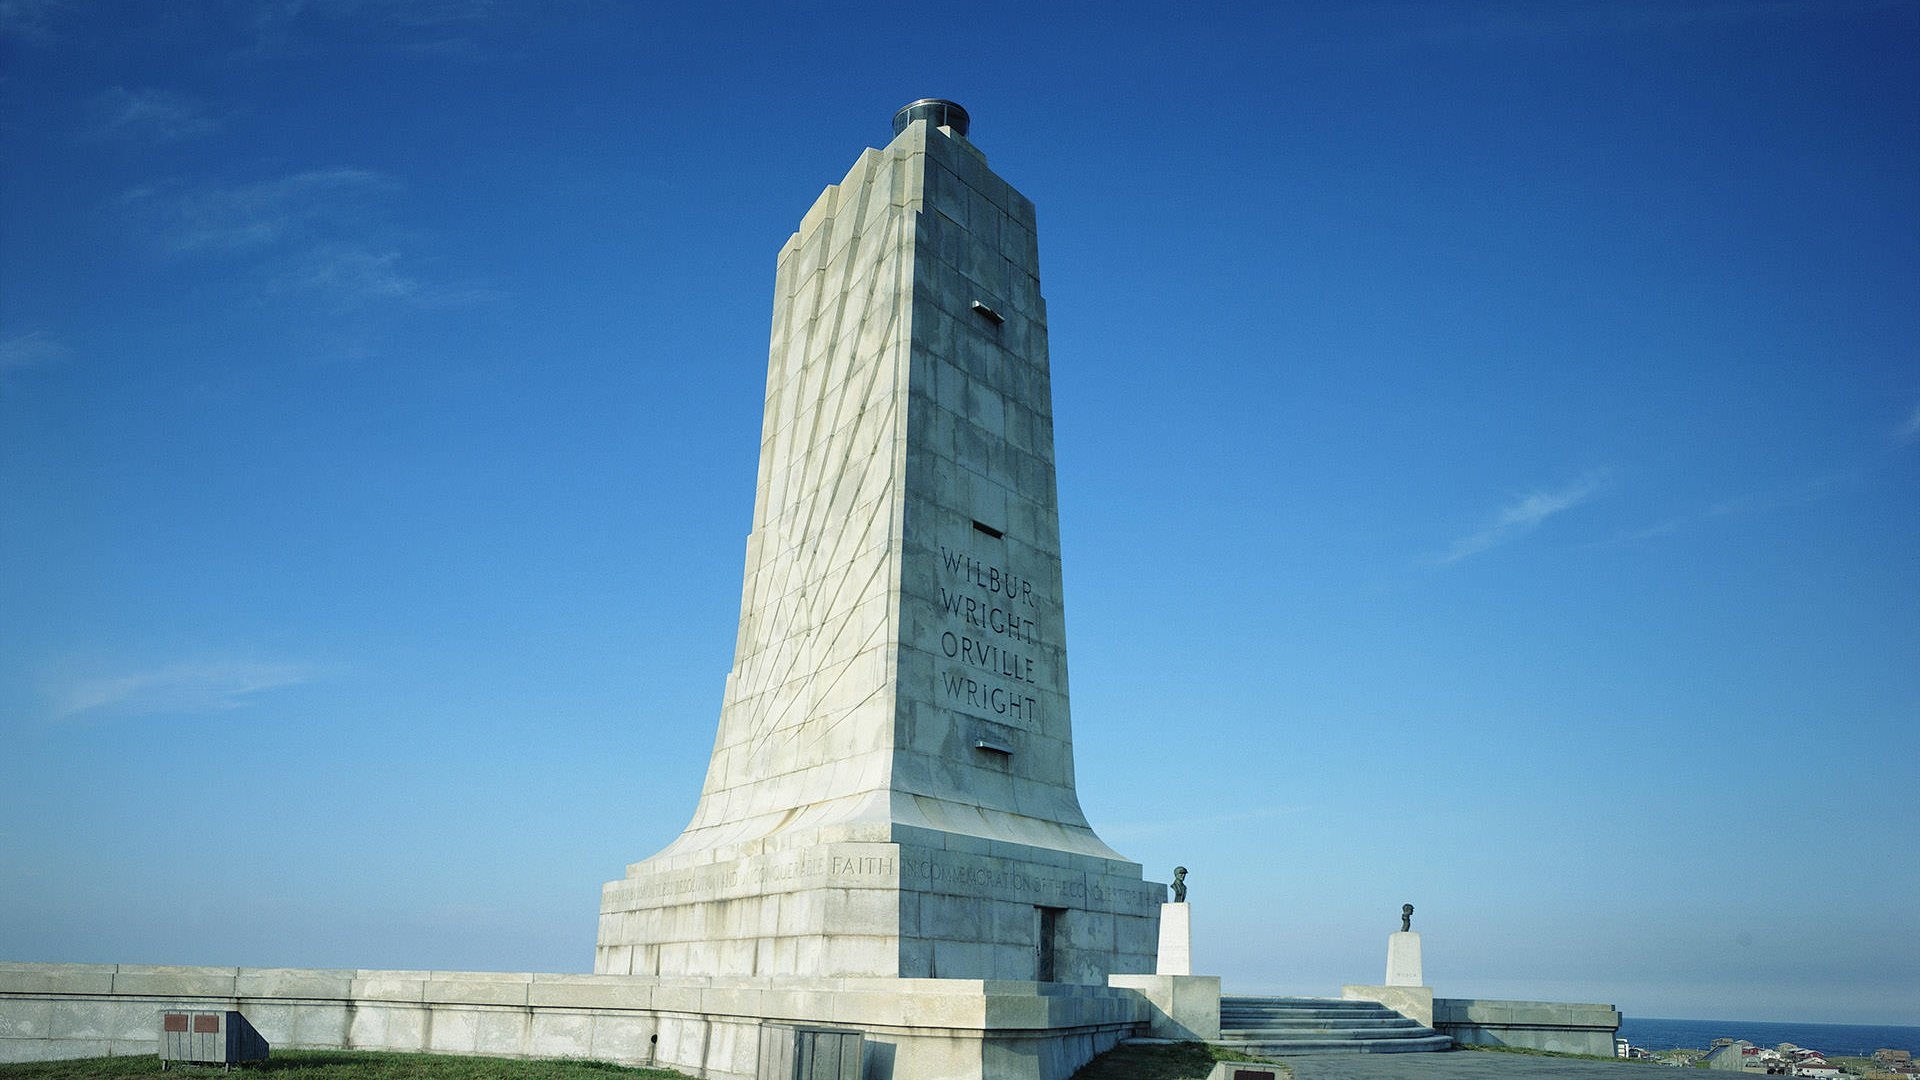 Wright brothers memorial photo